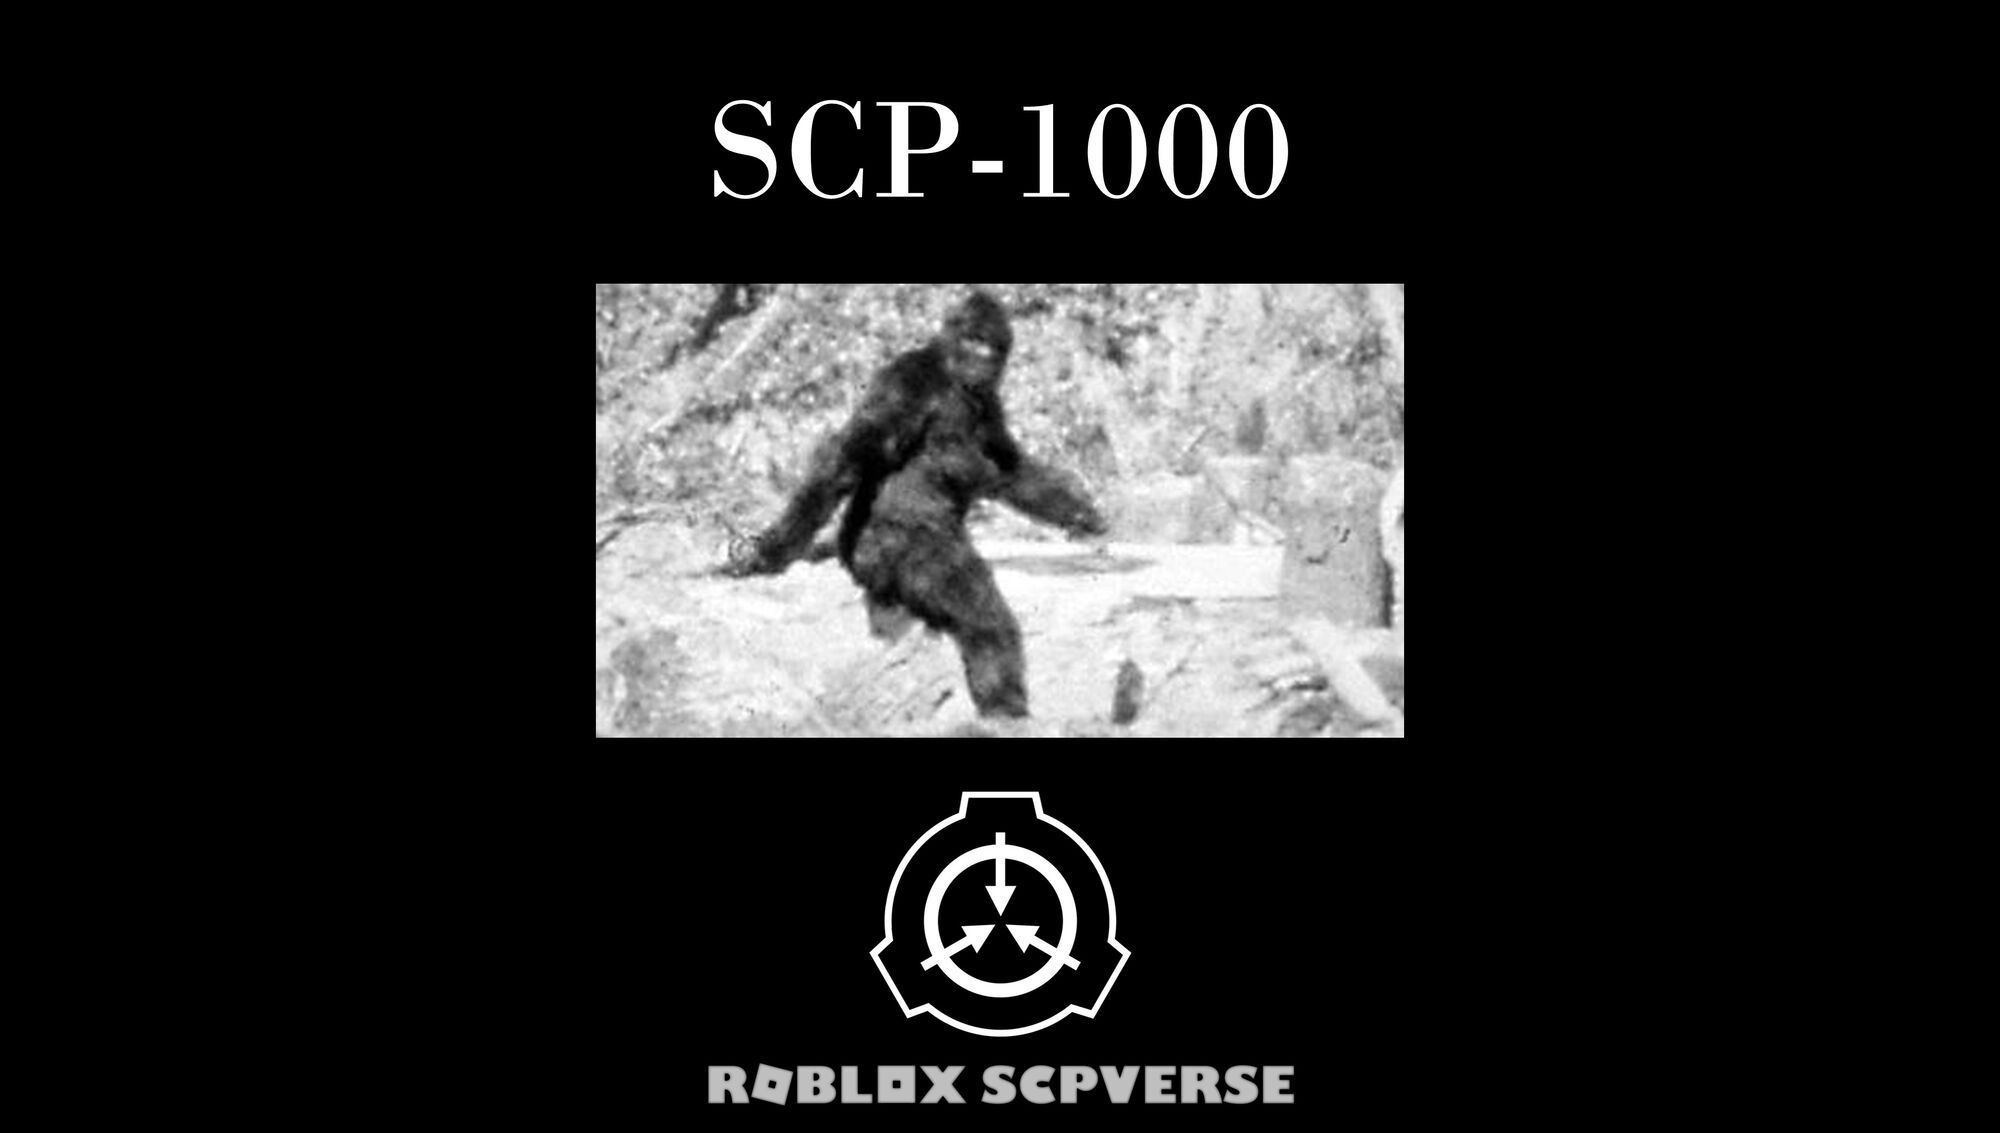 SCP-1000 (Film) | ROBLOX SCPverse Wiki | FANDOM powered by Wikia